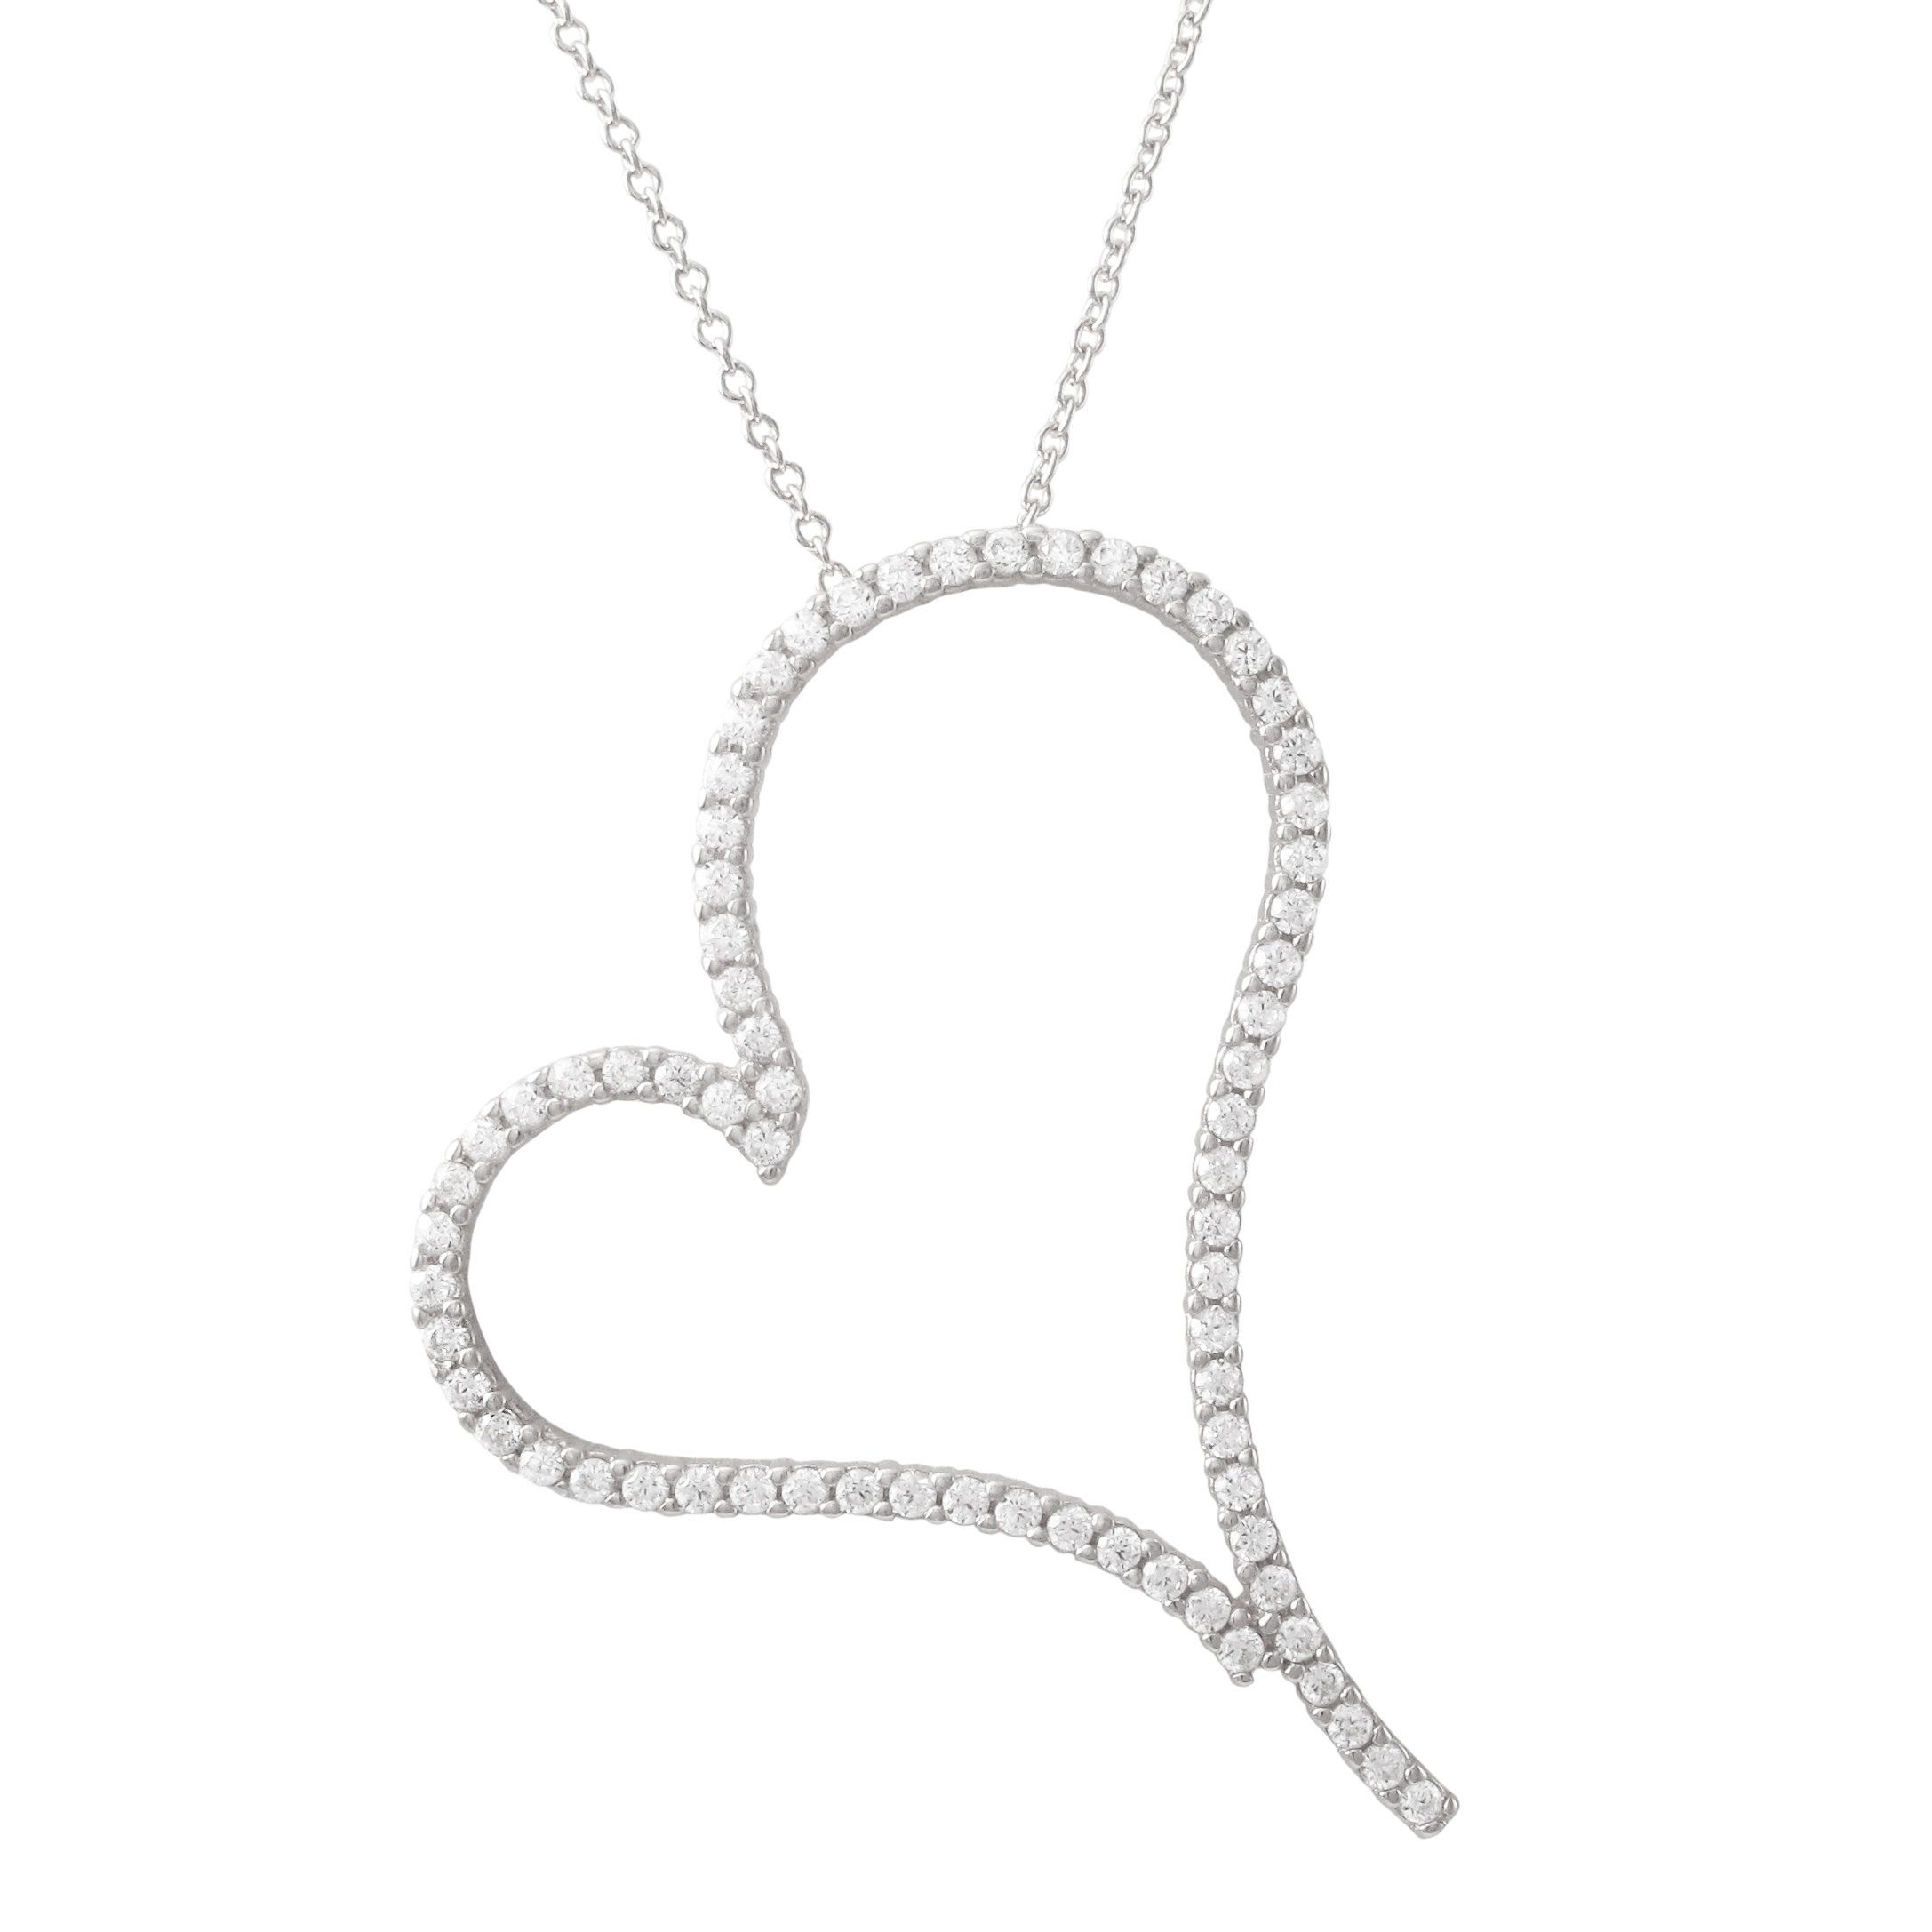 Luxiro Gold Finish Sterling Silver Cubic Zirconia Open Heart Pendant Necklace